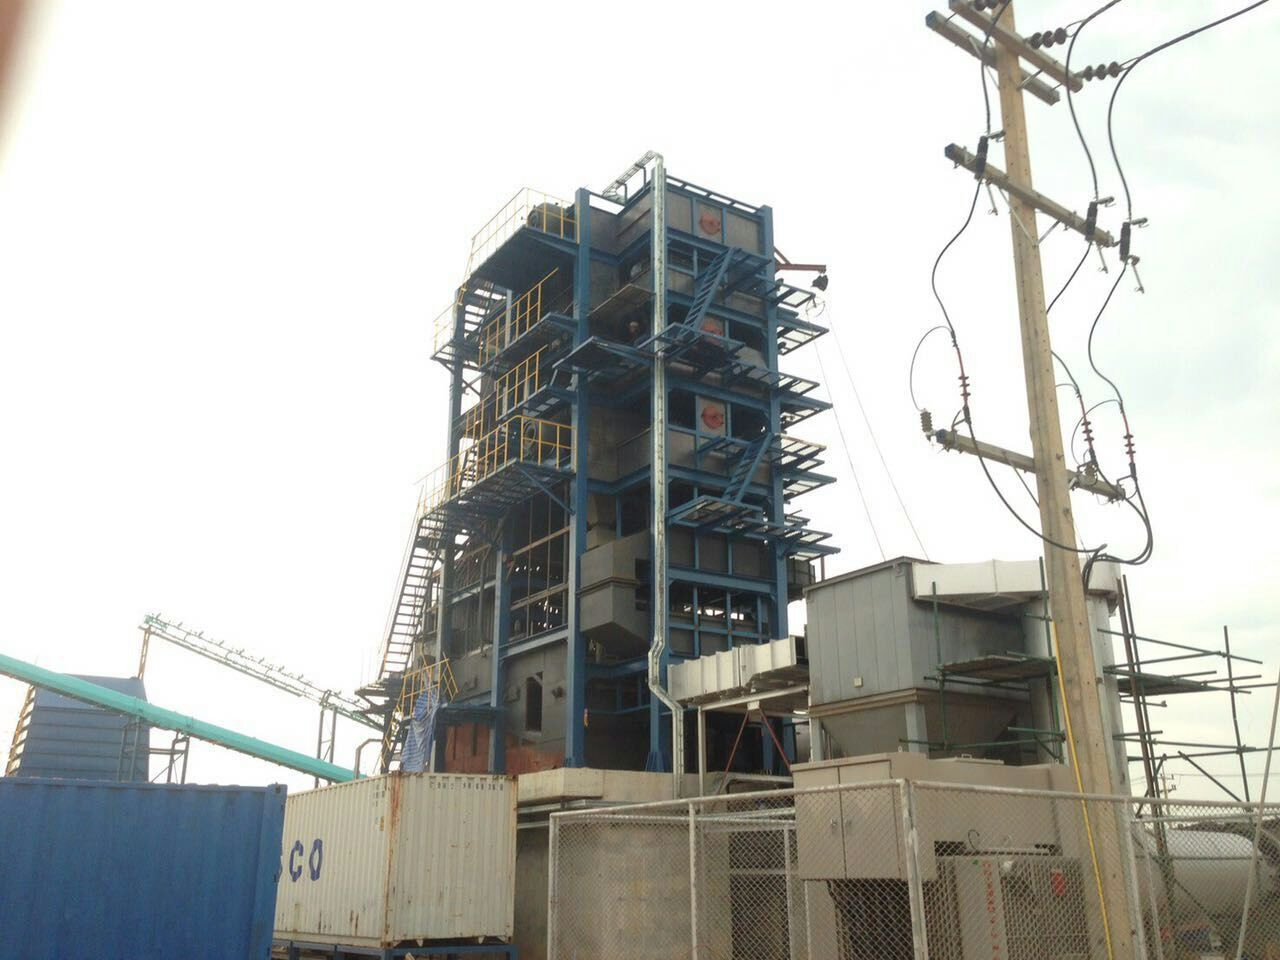 Hydro test starts for our BIOMASS STEAM BOILER in Thailand